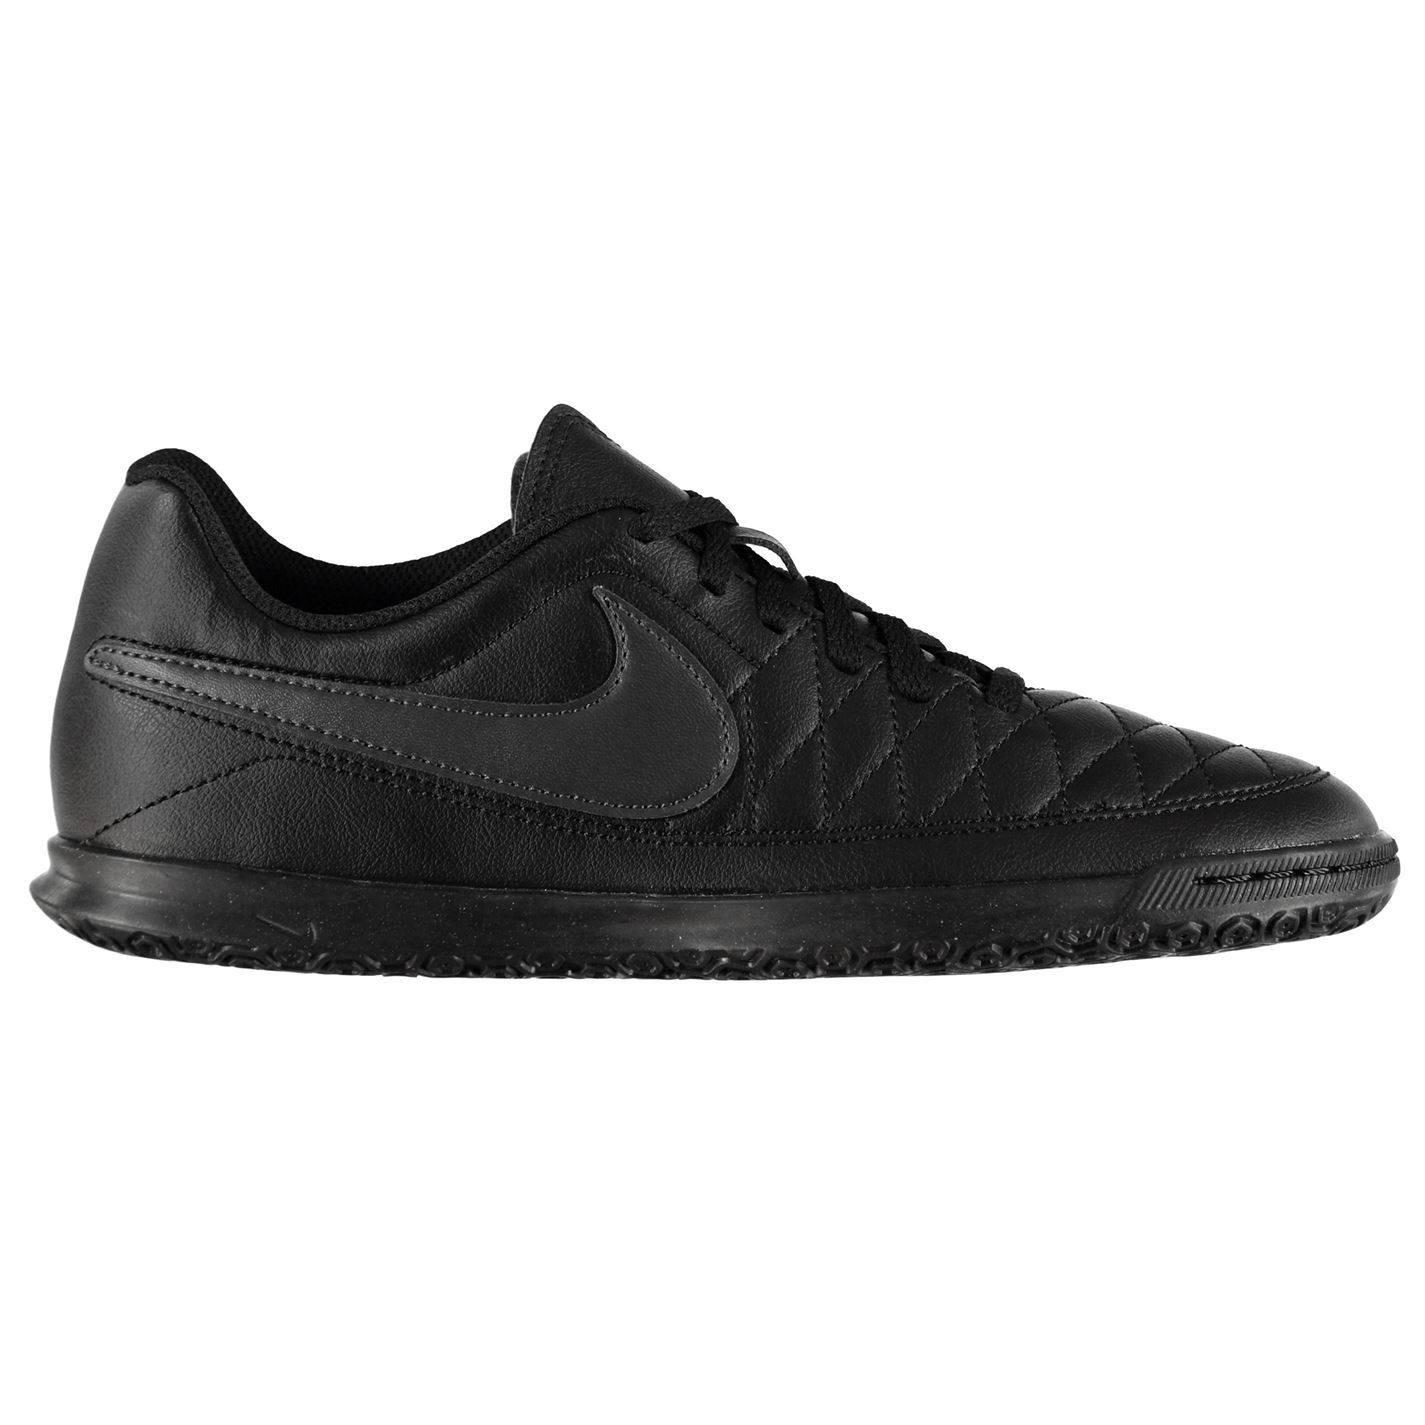 Nike-majestry-Indoor-Football-Baskets-Pour-Homme-Football-Futsal-Chaussures-Baskets-Bottes miniature 8